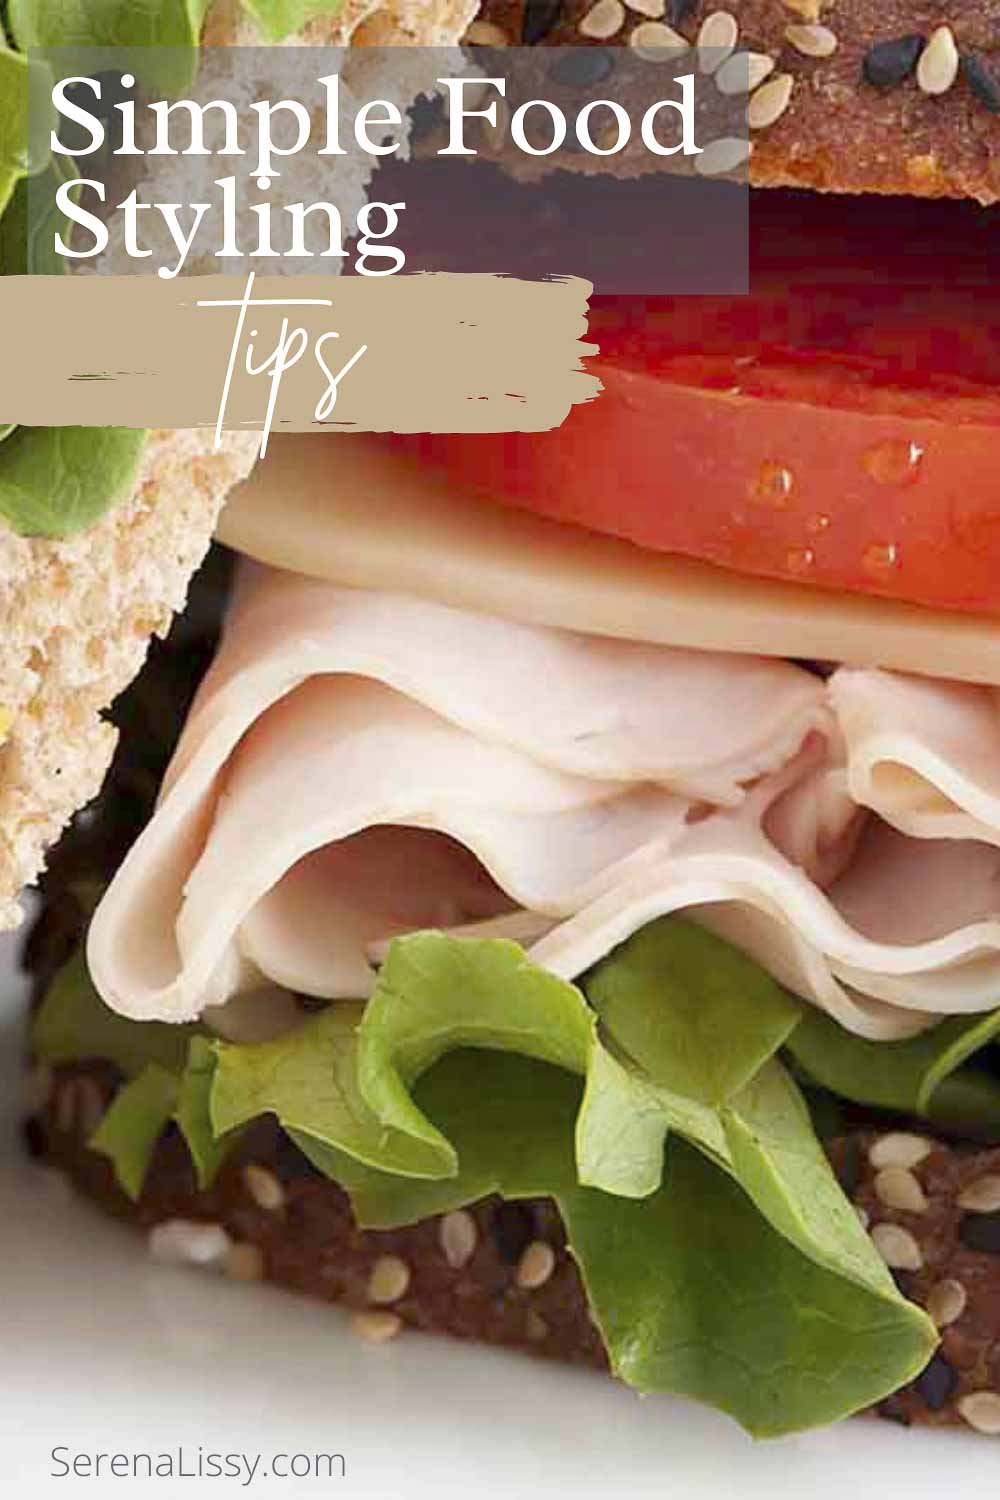 Simple Food Styling with Sandwich